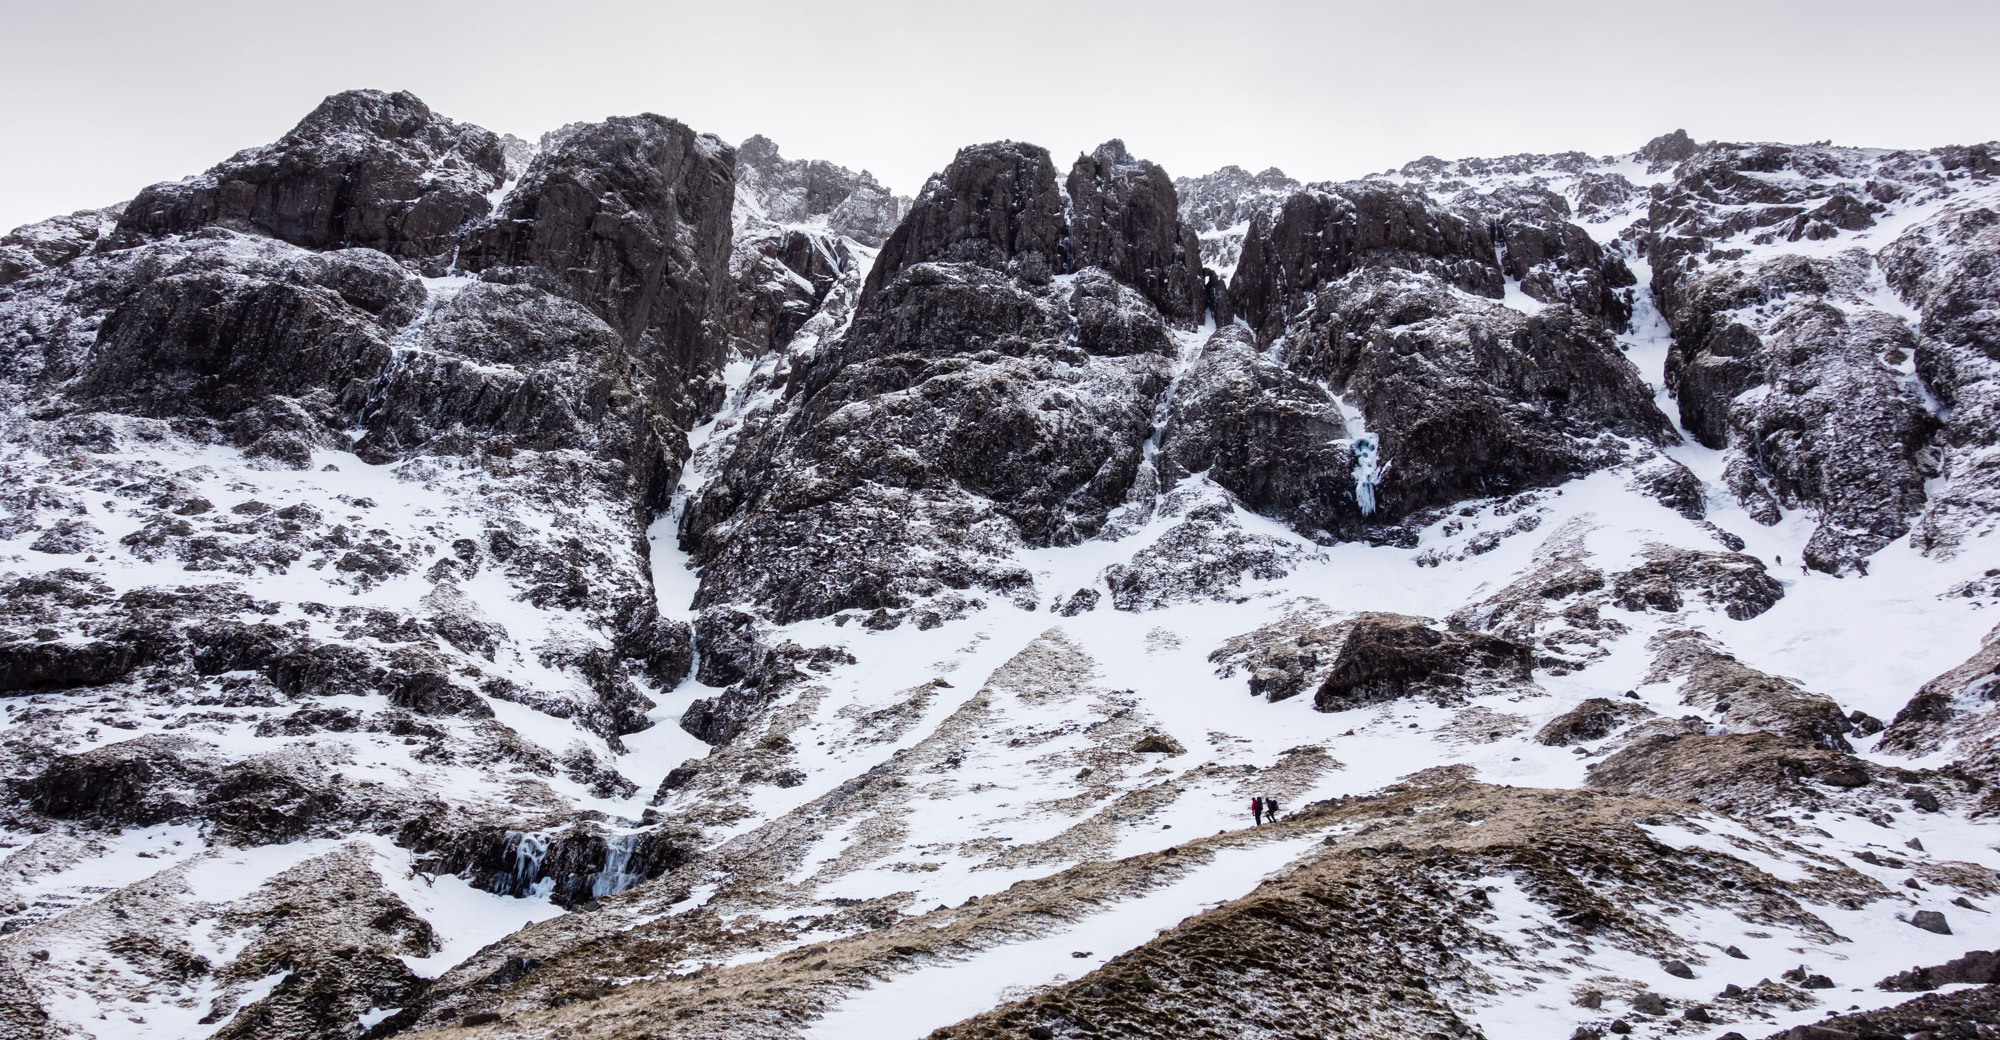 The complex West Face of Aonach Dubh with the obvious rift of No4 Gully centre-left and No6 Gully on the far right